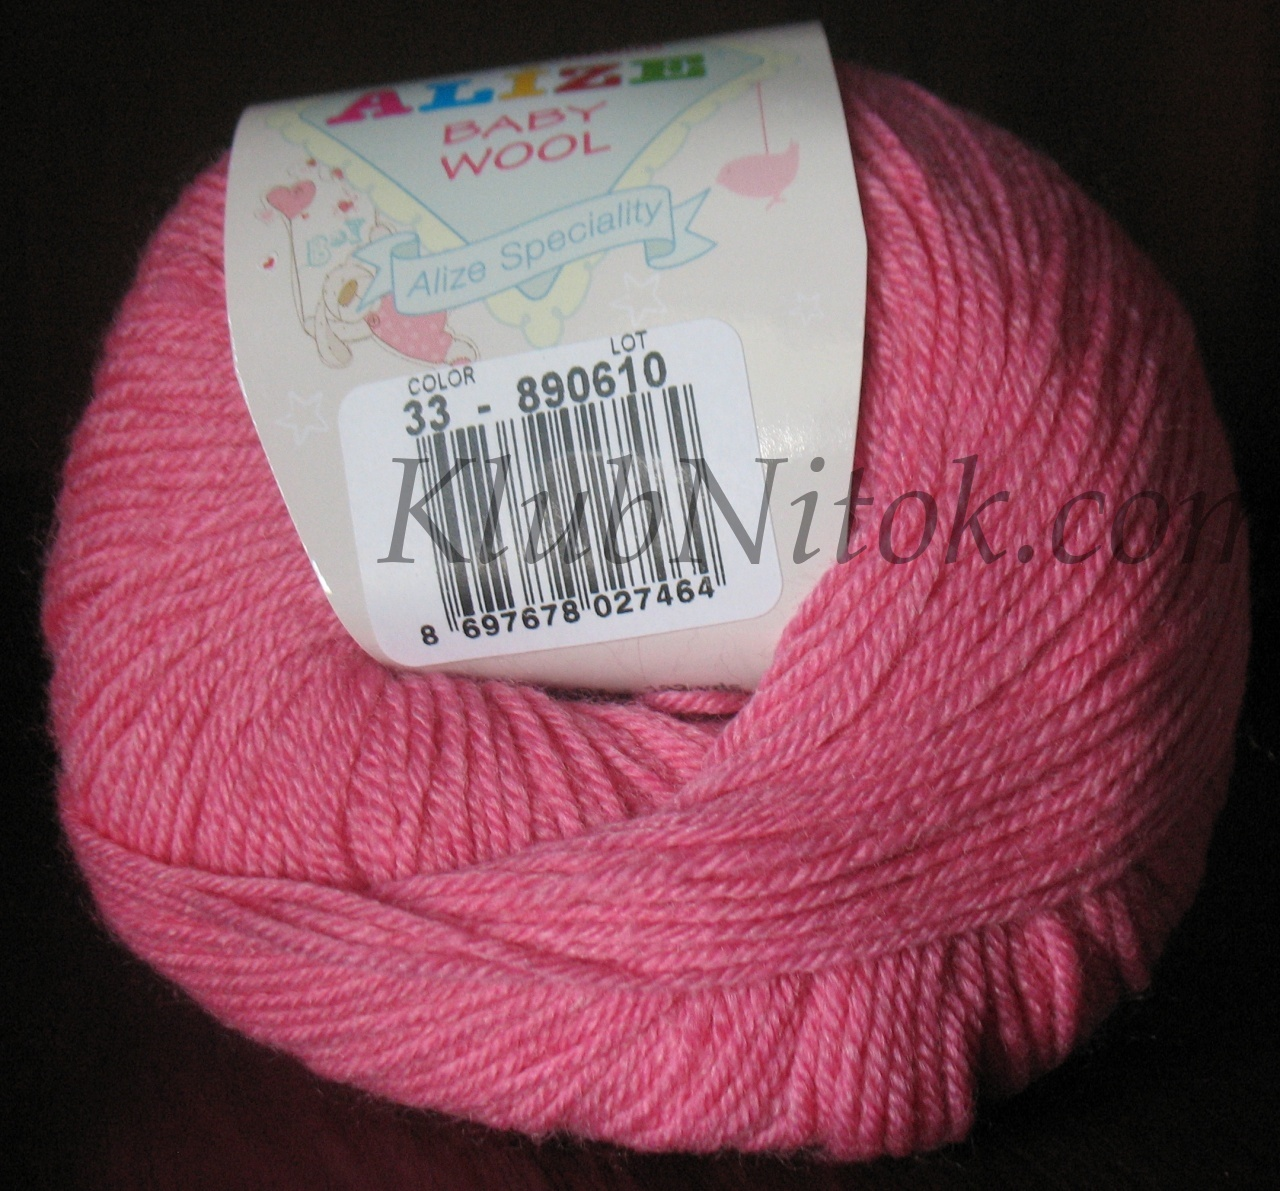 Baby wool 33